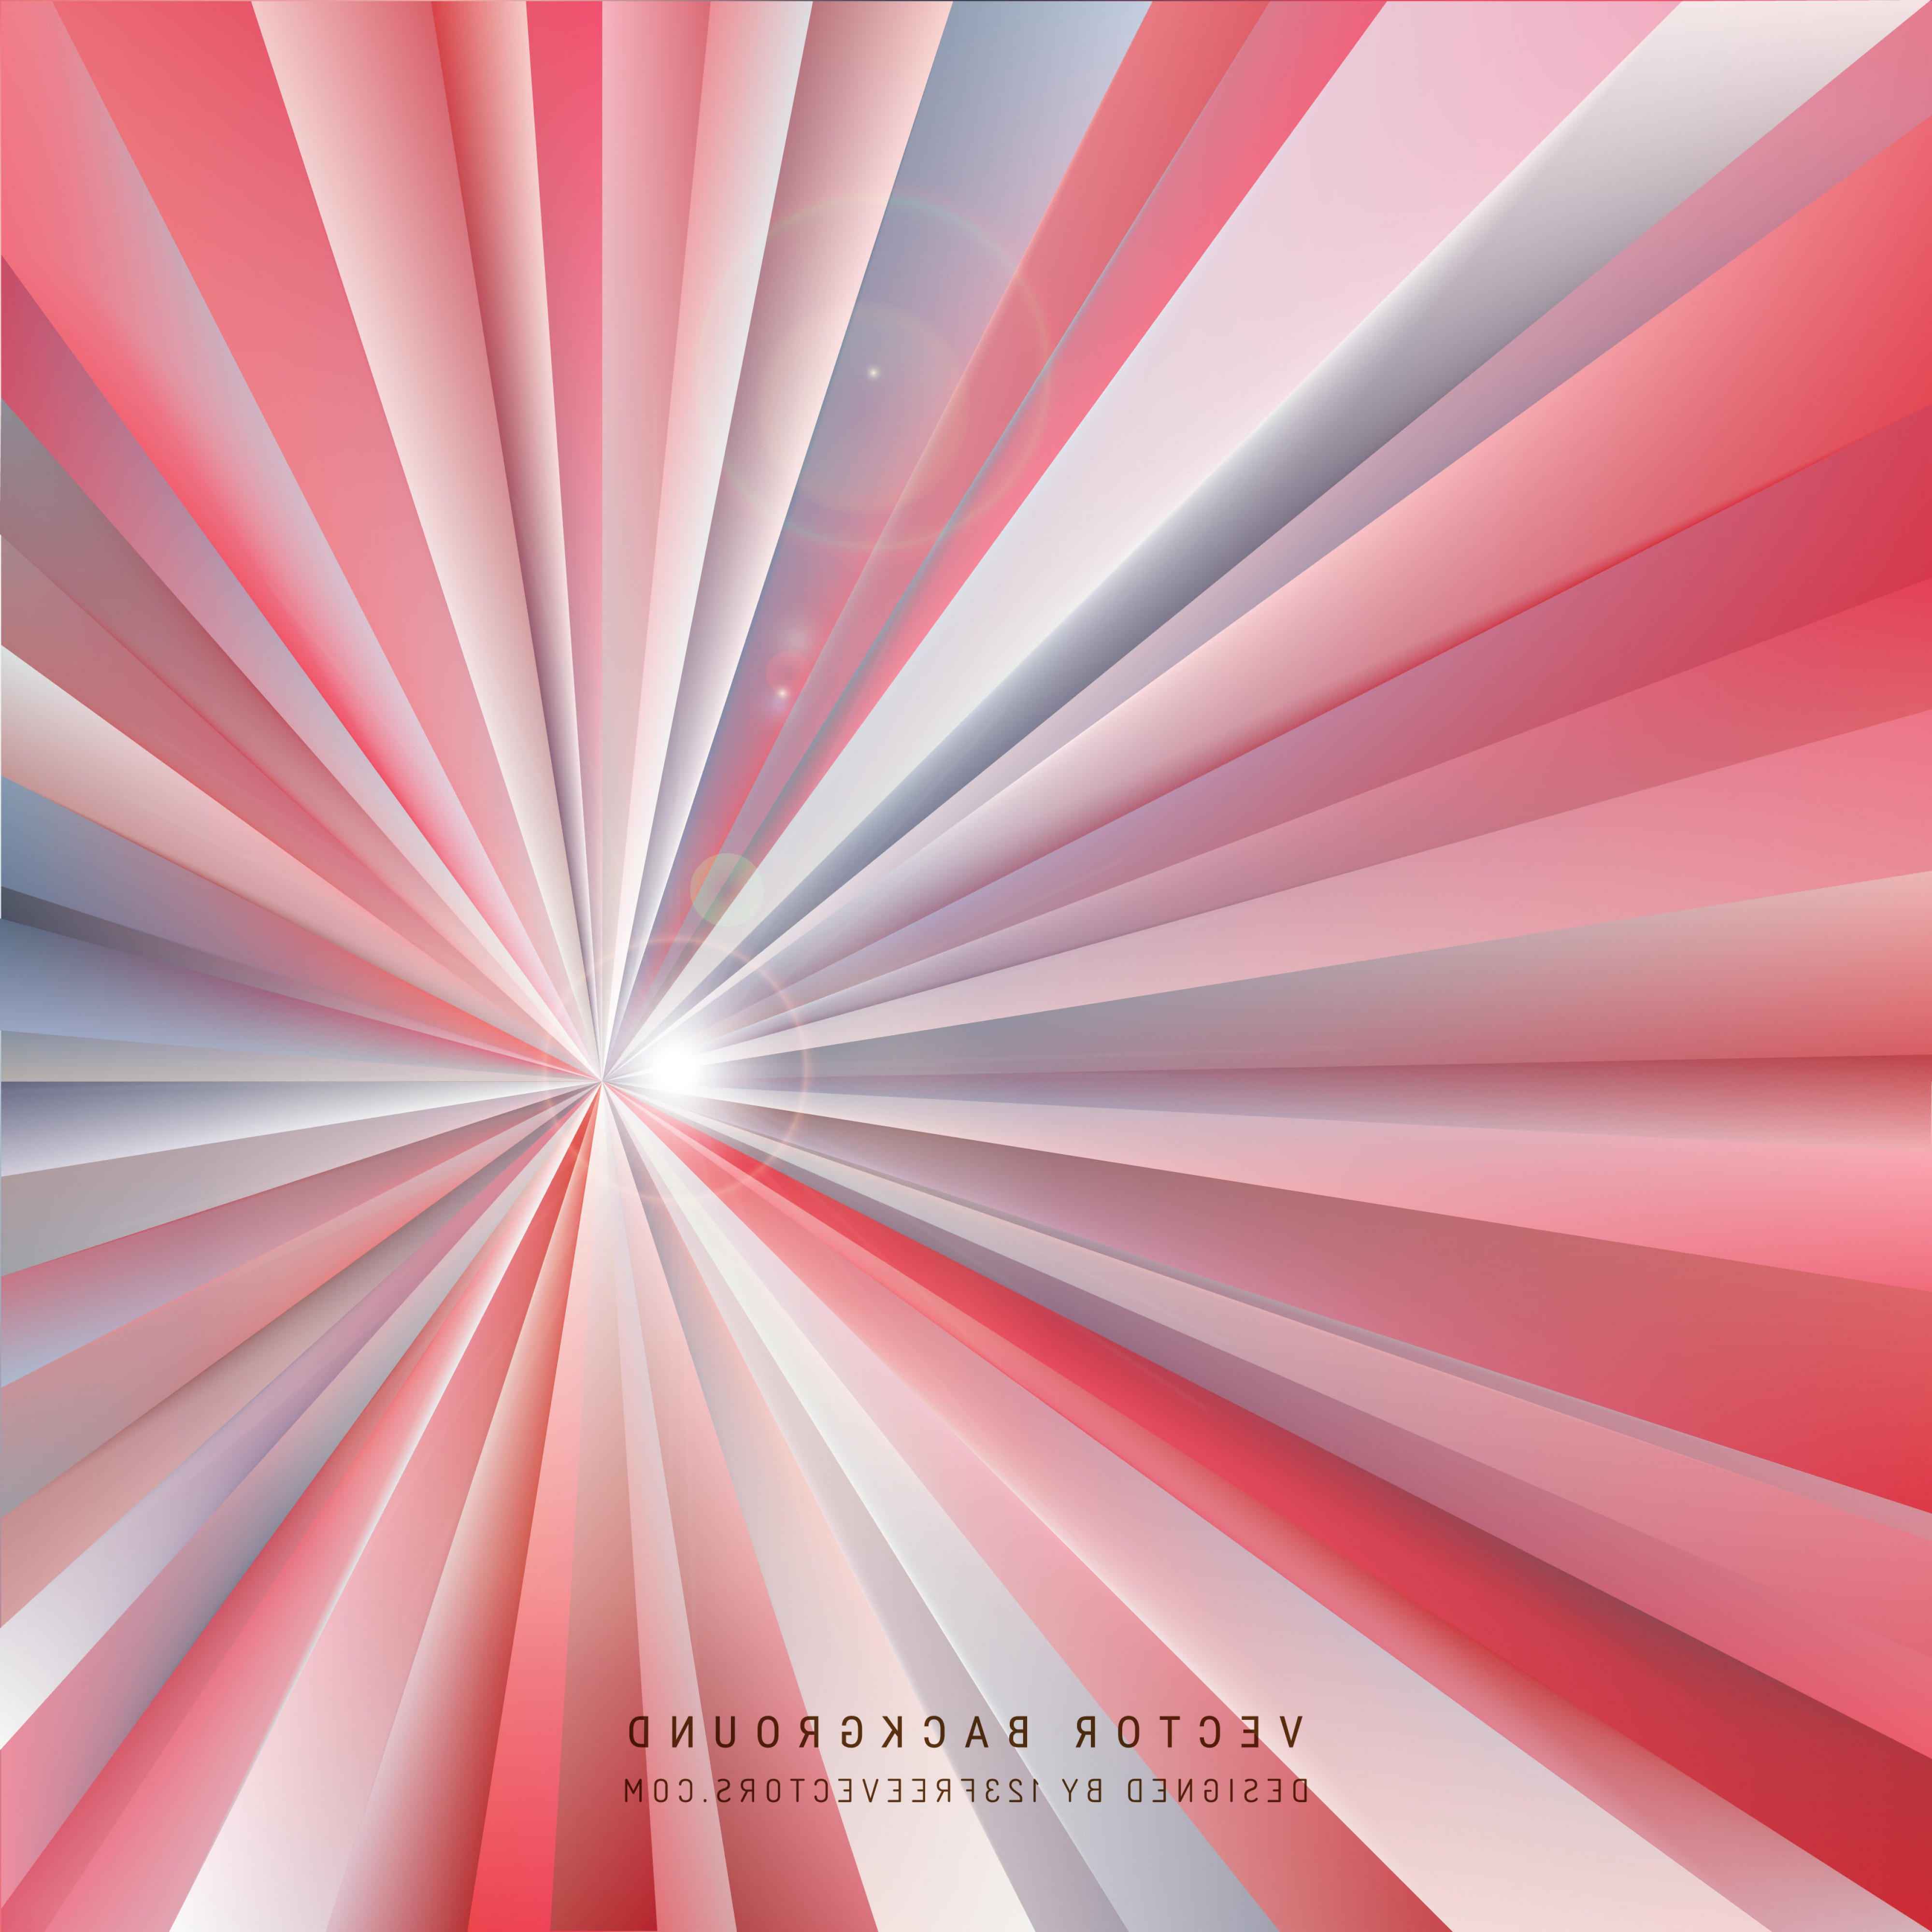 Free Vector Backgrounds Illustrator: Abstract Red Light Rays Background Illustrator